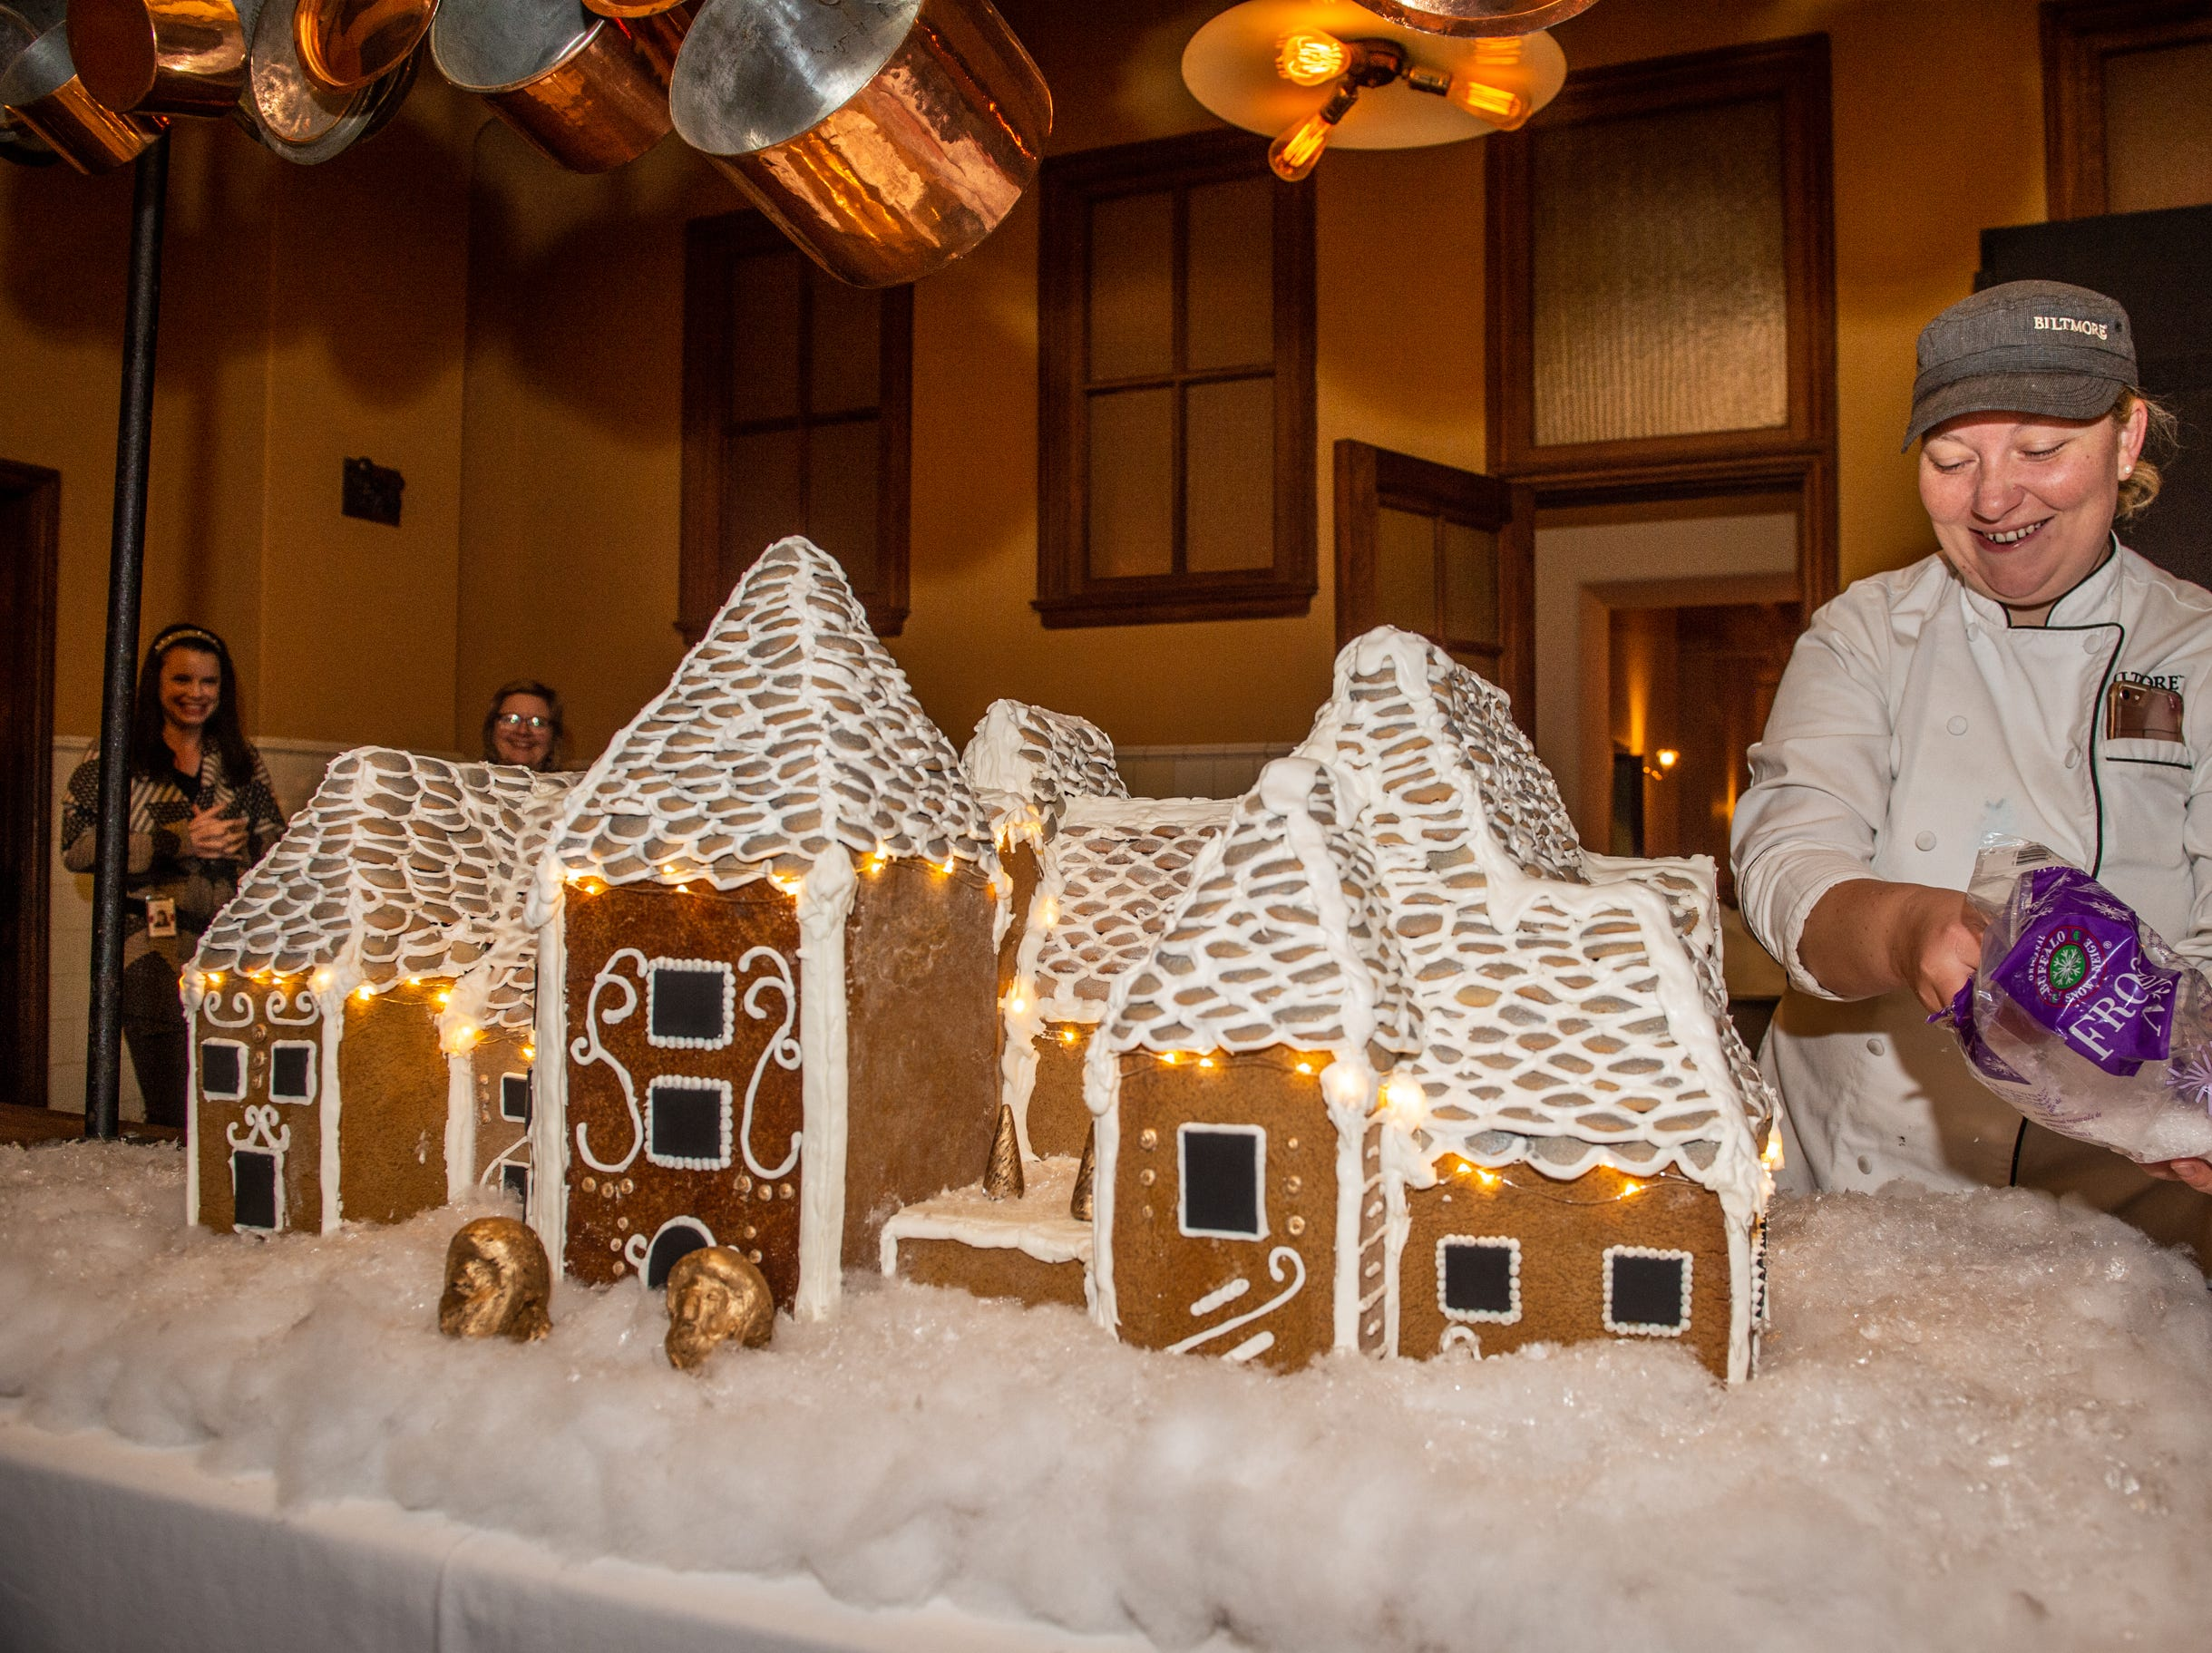 Biltmore pastry chef Julie Scheibel tops the cotton snow with sparkling flakes around the gingerbread house in the Biltmore House kitchen on the morning of Nov. 2, 2018.